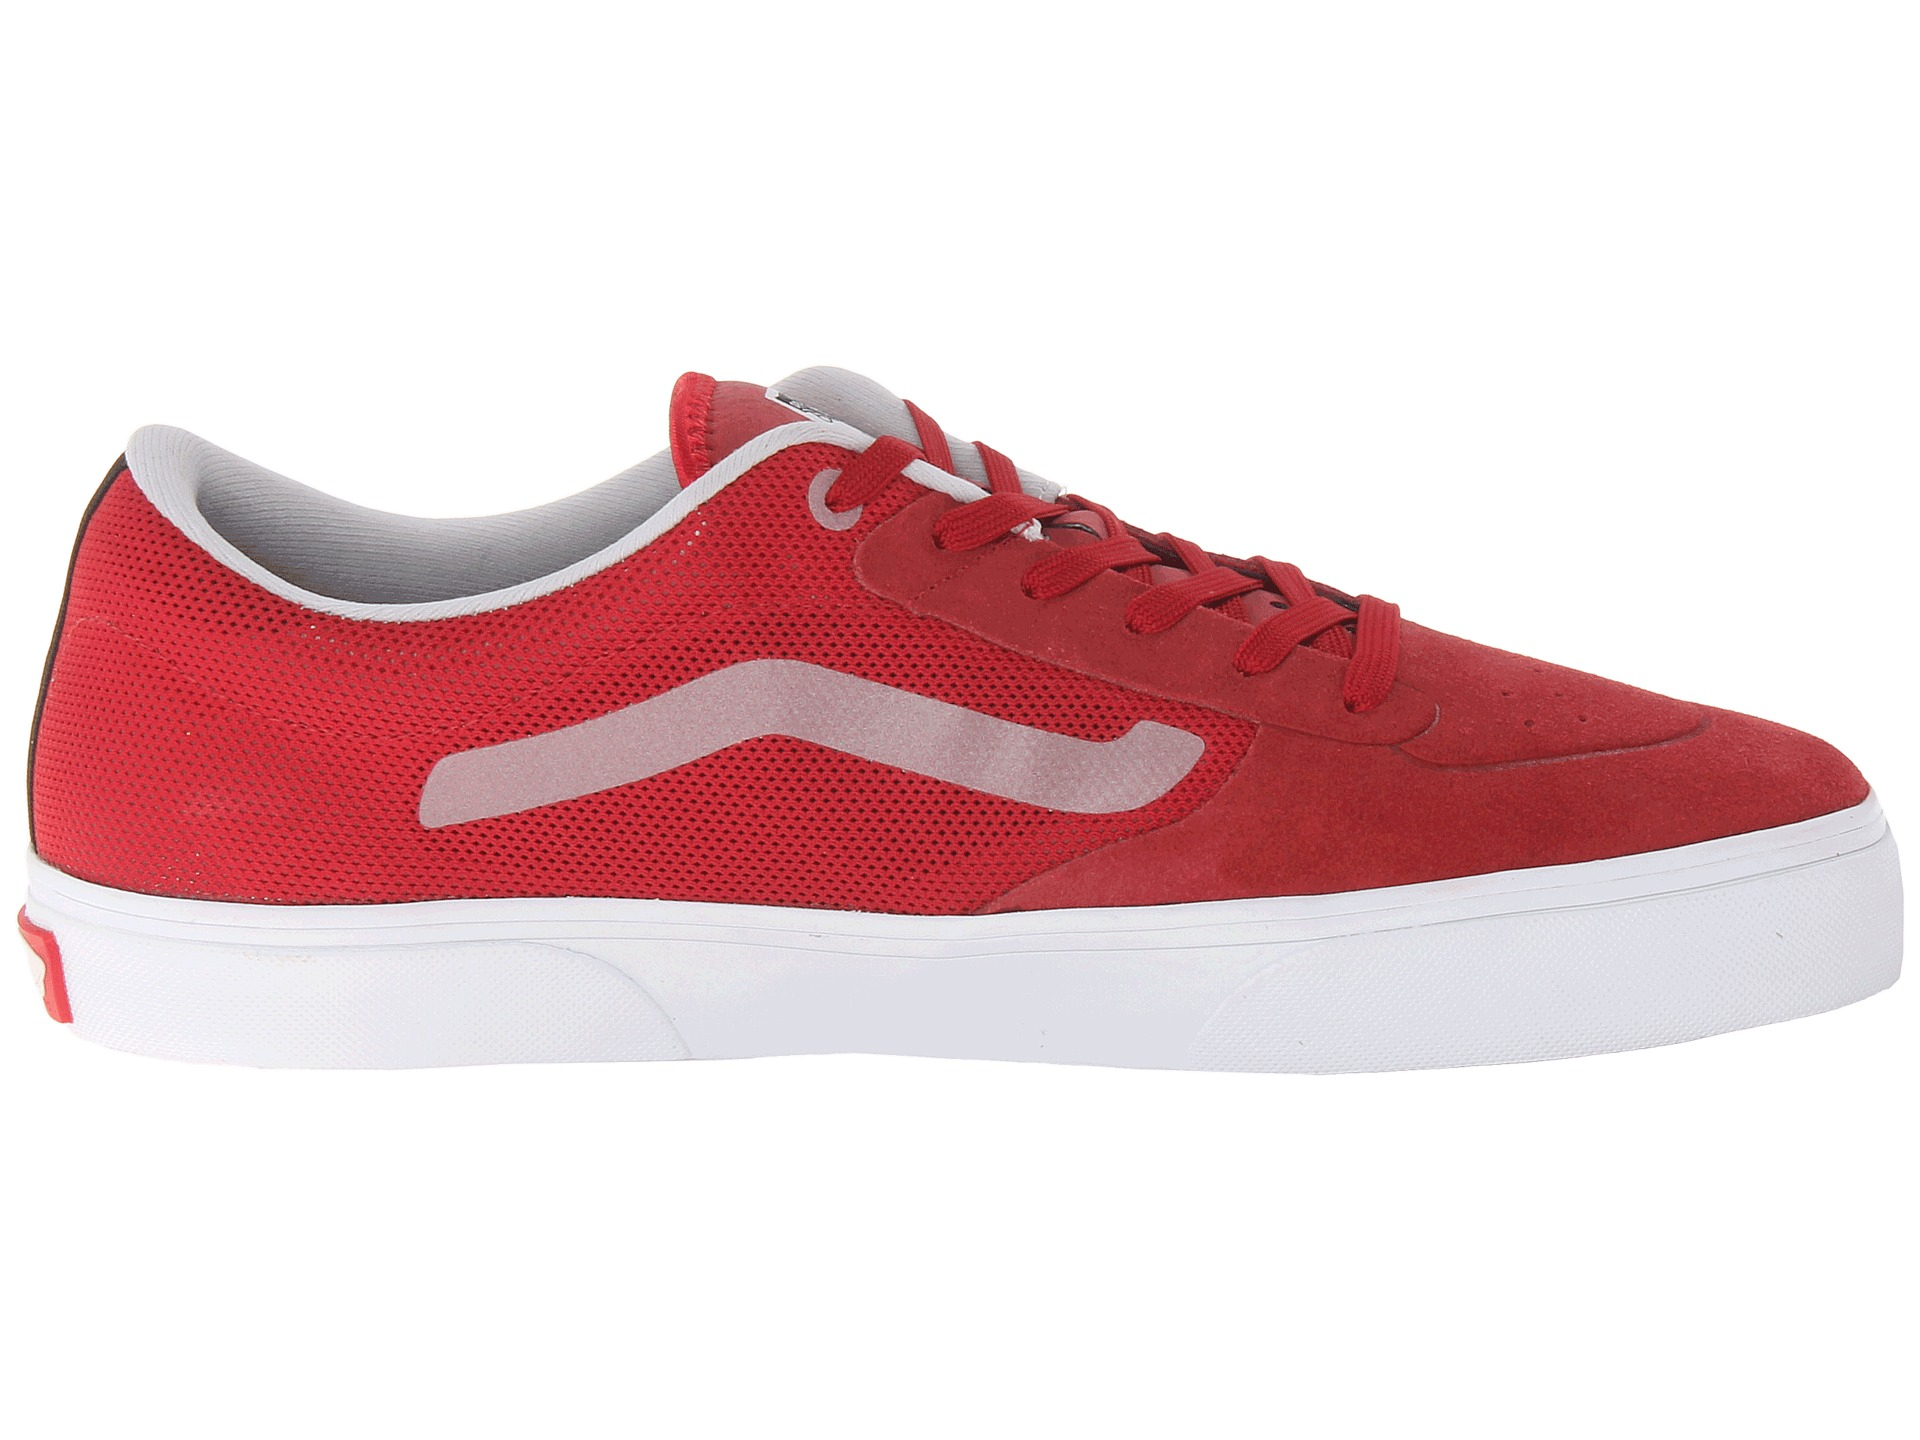 d02a07bbc584a3 Lyst - Vans Rowley Pro Lite in Red for Men